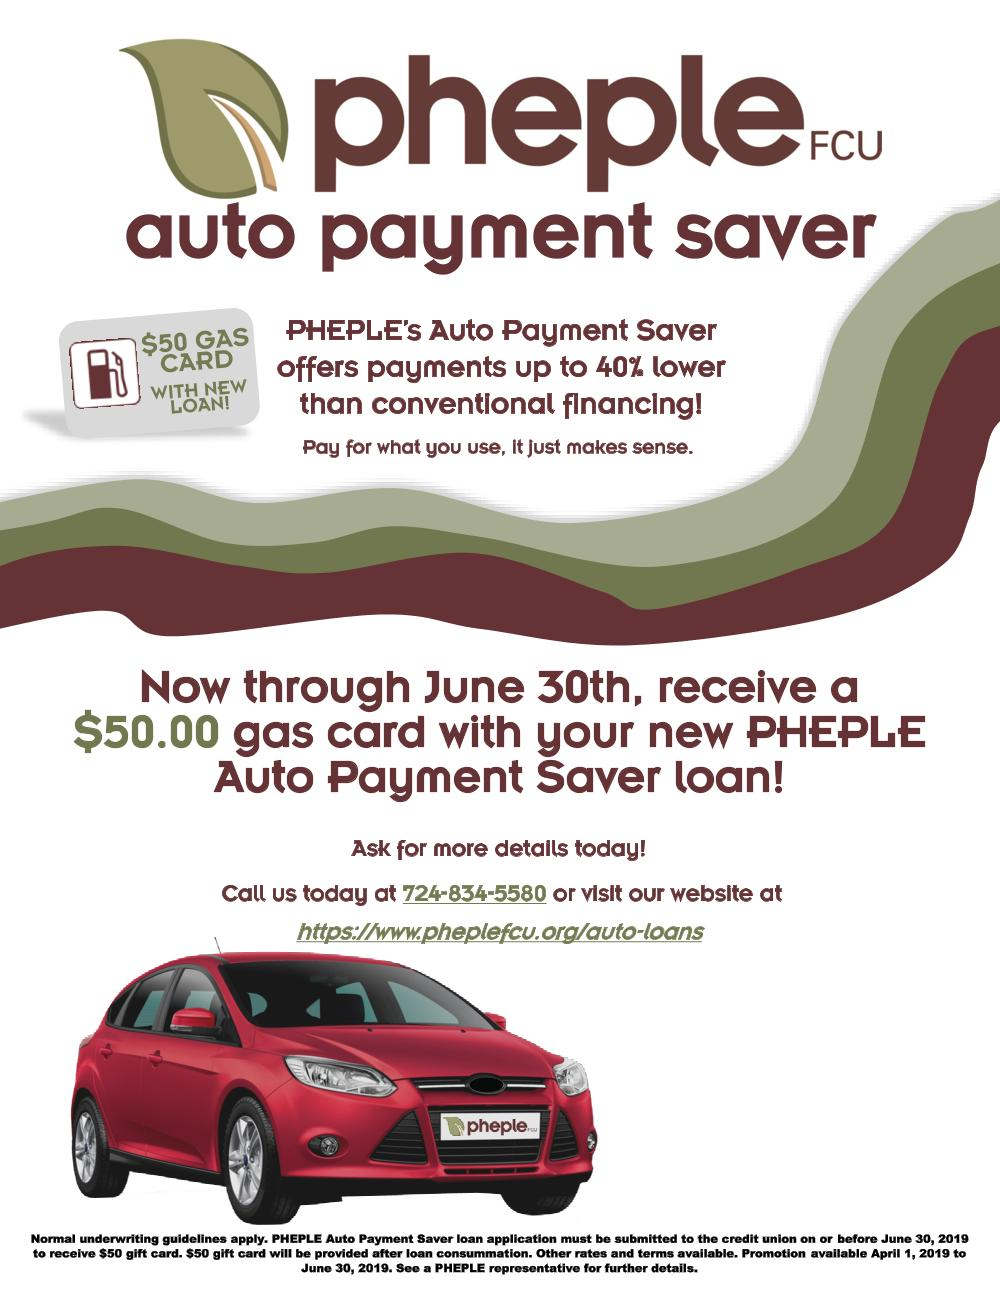 Pheple FCU Auto Payment Saver -Offers payments up to 40% lower than conventional financing Pay for what you use. It just makes sense.. Now through June 30th, receive a $50 gas card with your new PHEPLE Auto Payment Saver Loan!